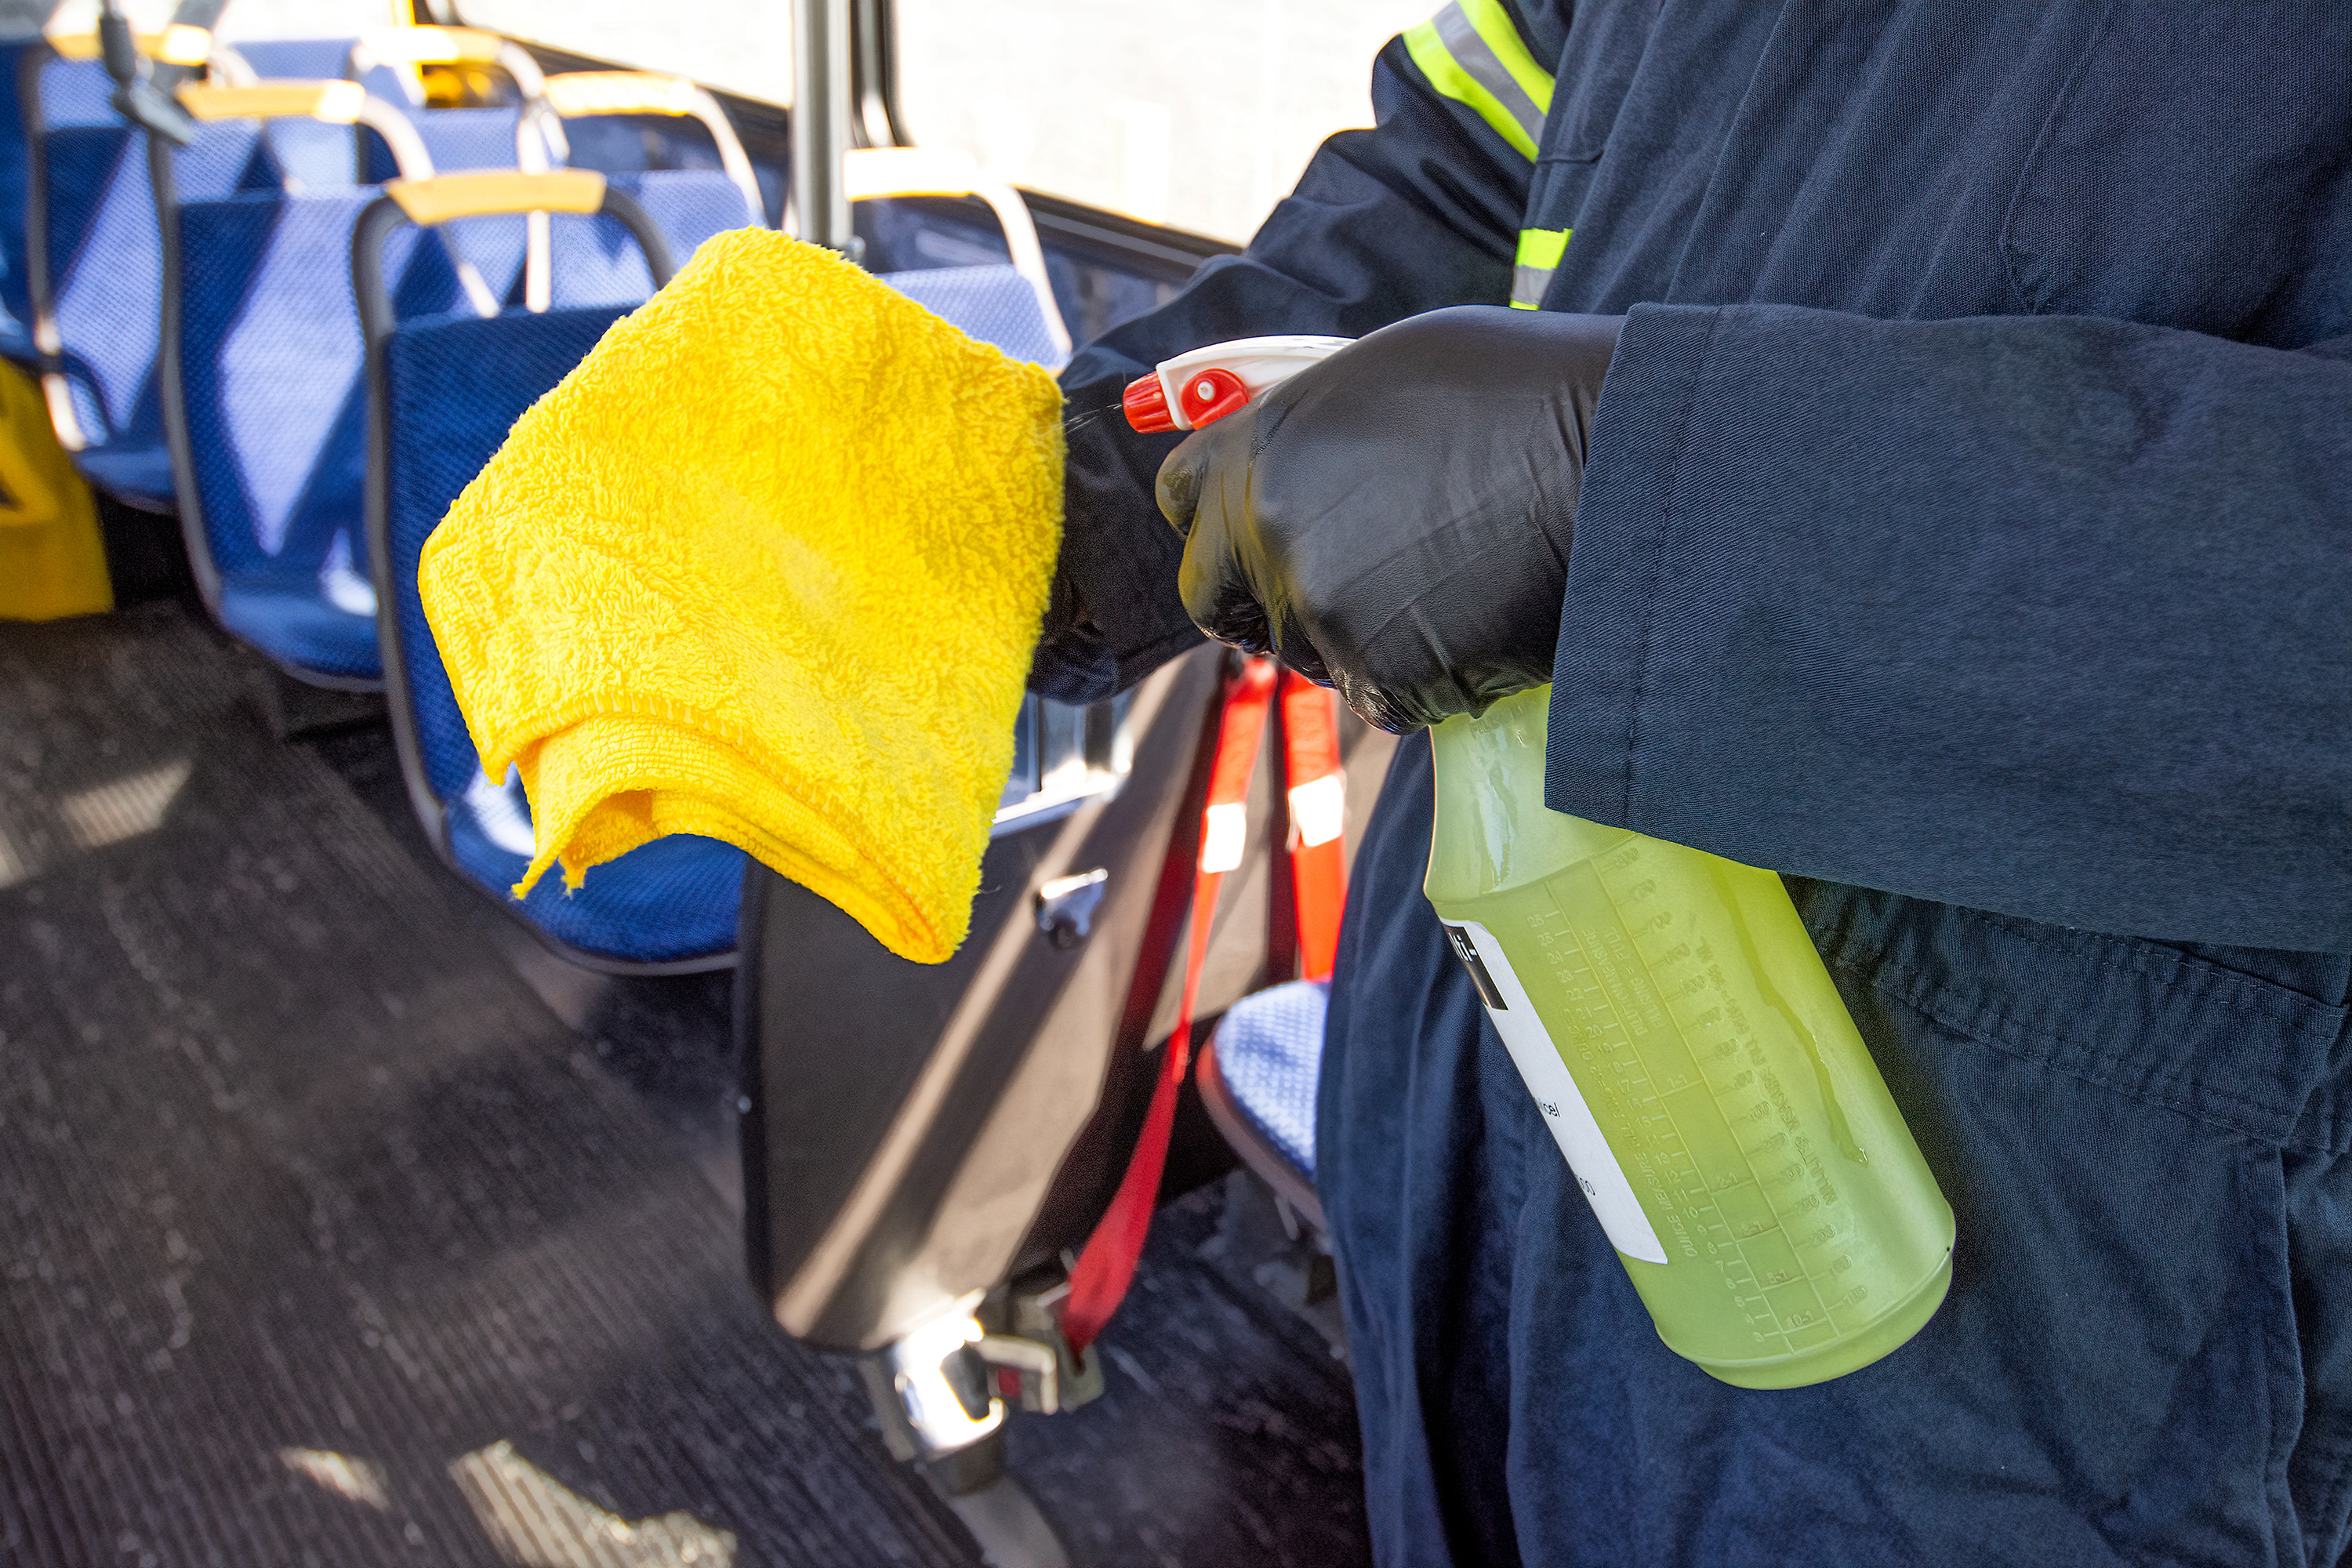 Cleaning high-touch areas on the bus